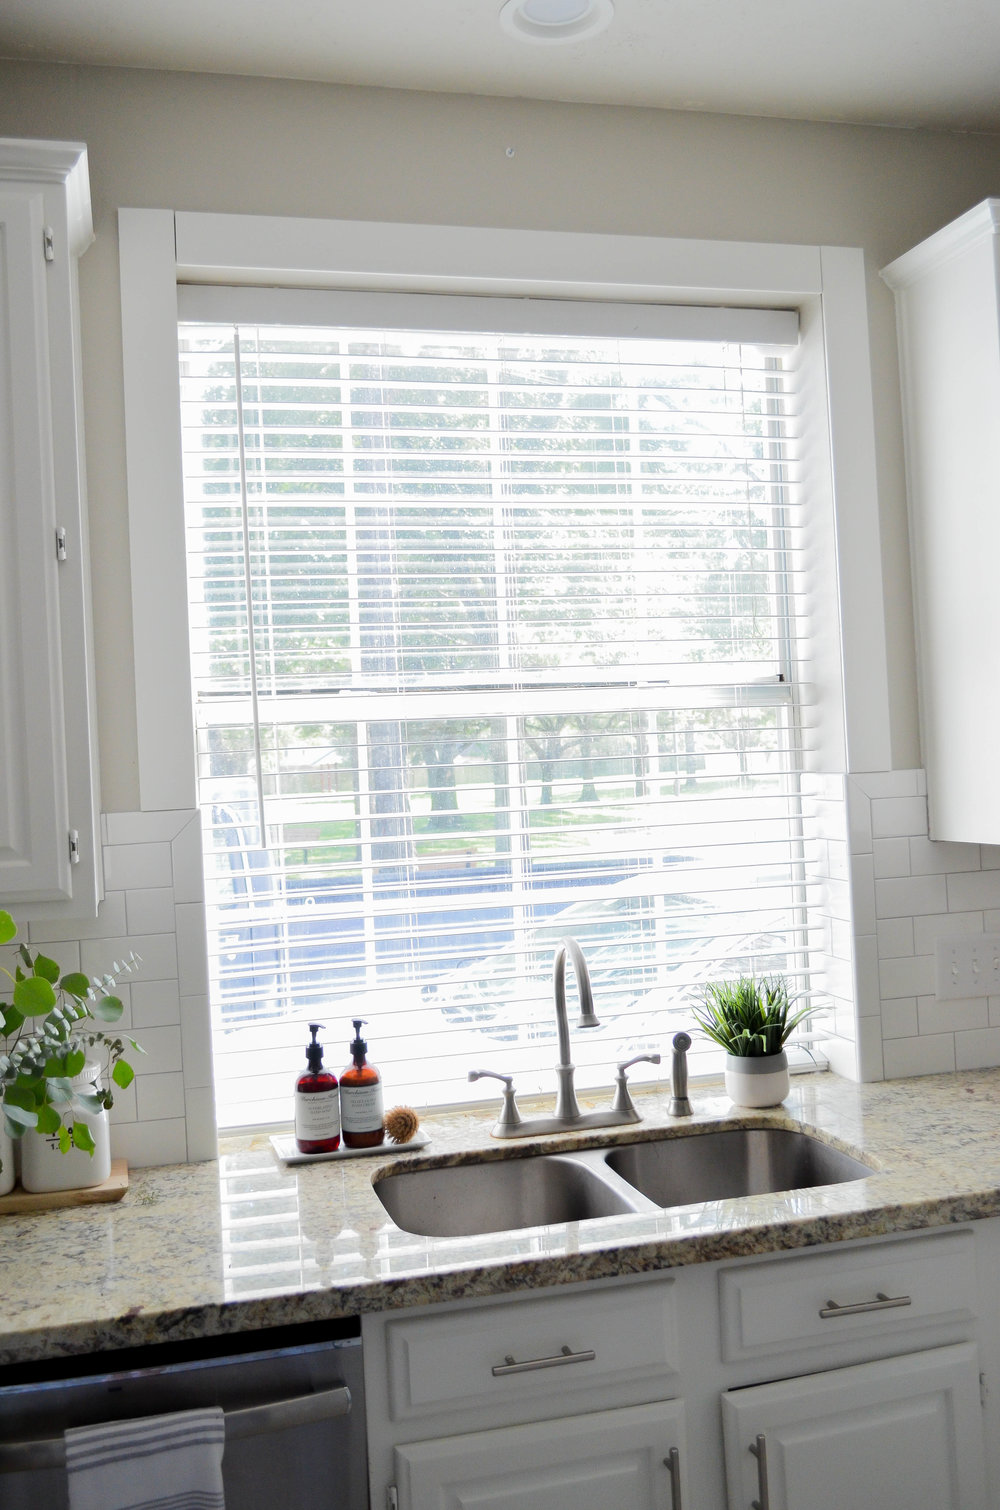 Adding Farmhouse Charm: Framing a Kitchen Window